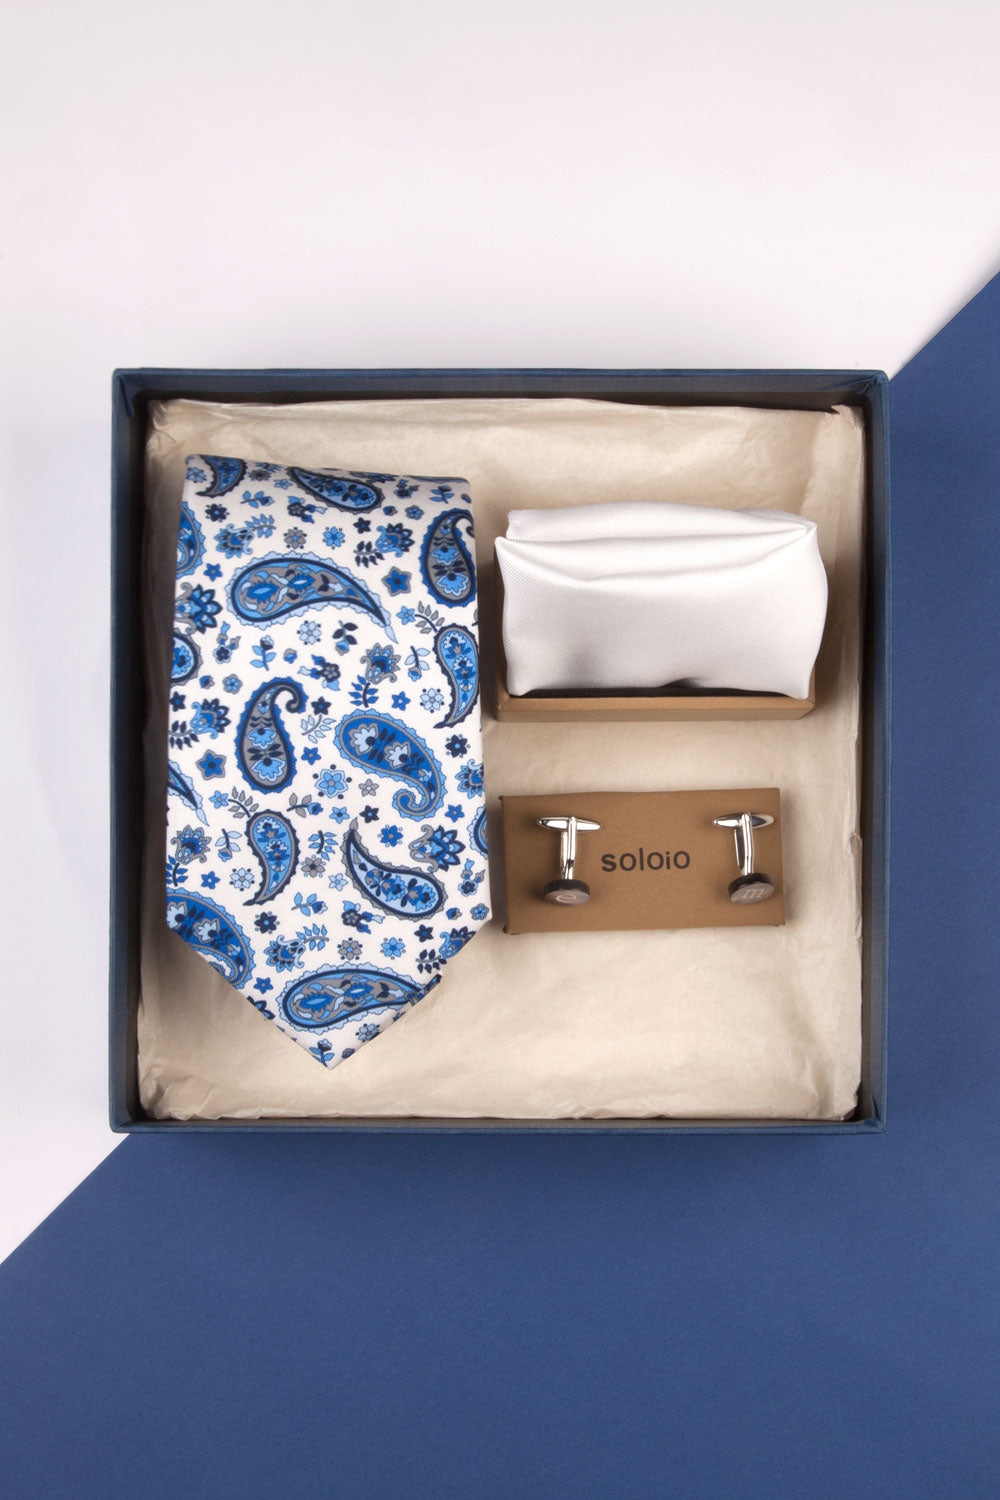 PREMIUM BOX NOVIO PAYSLEY AZUL